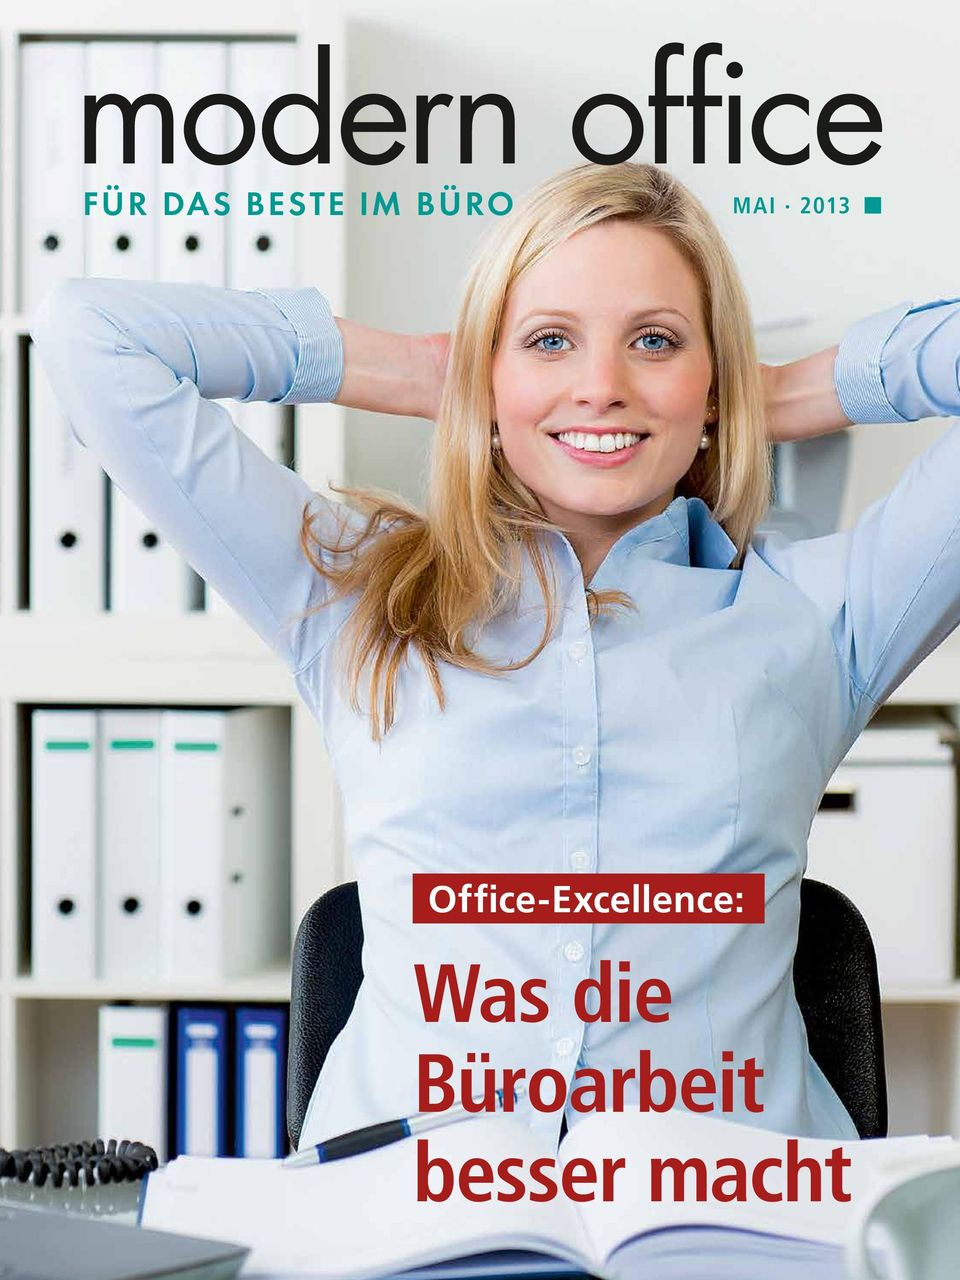 Office-Excellence: Was